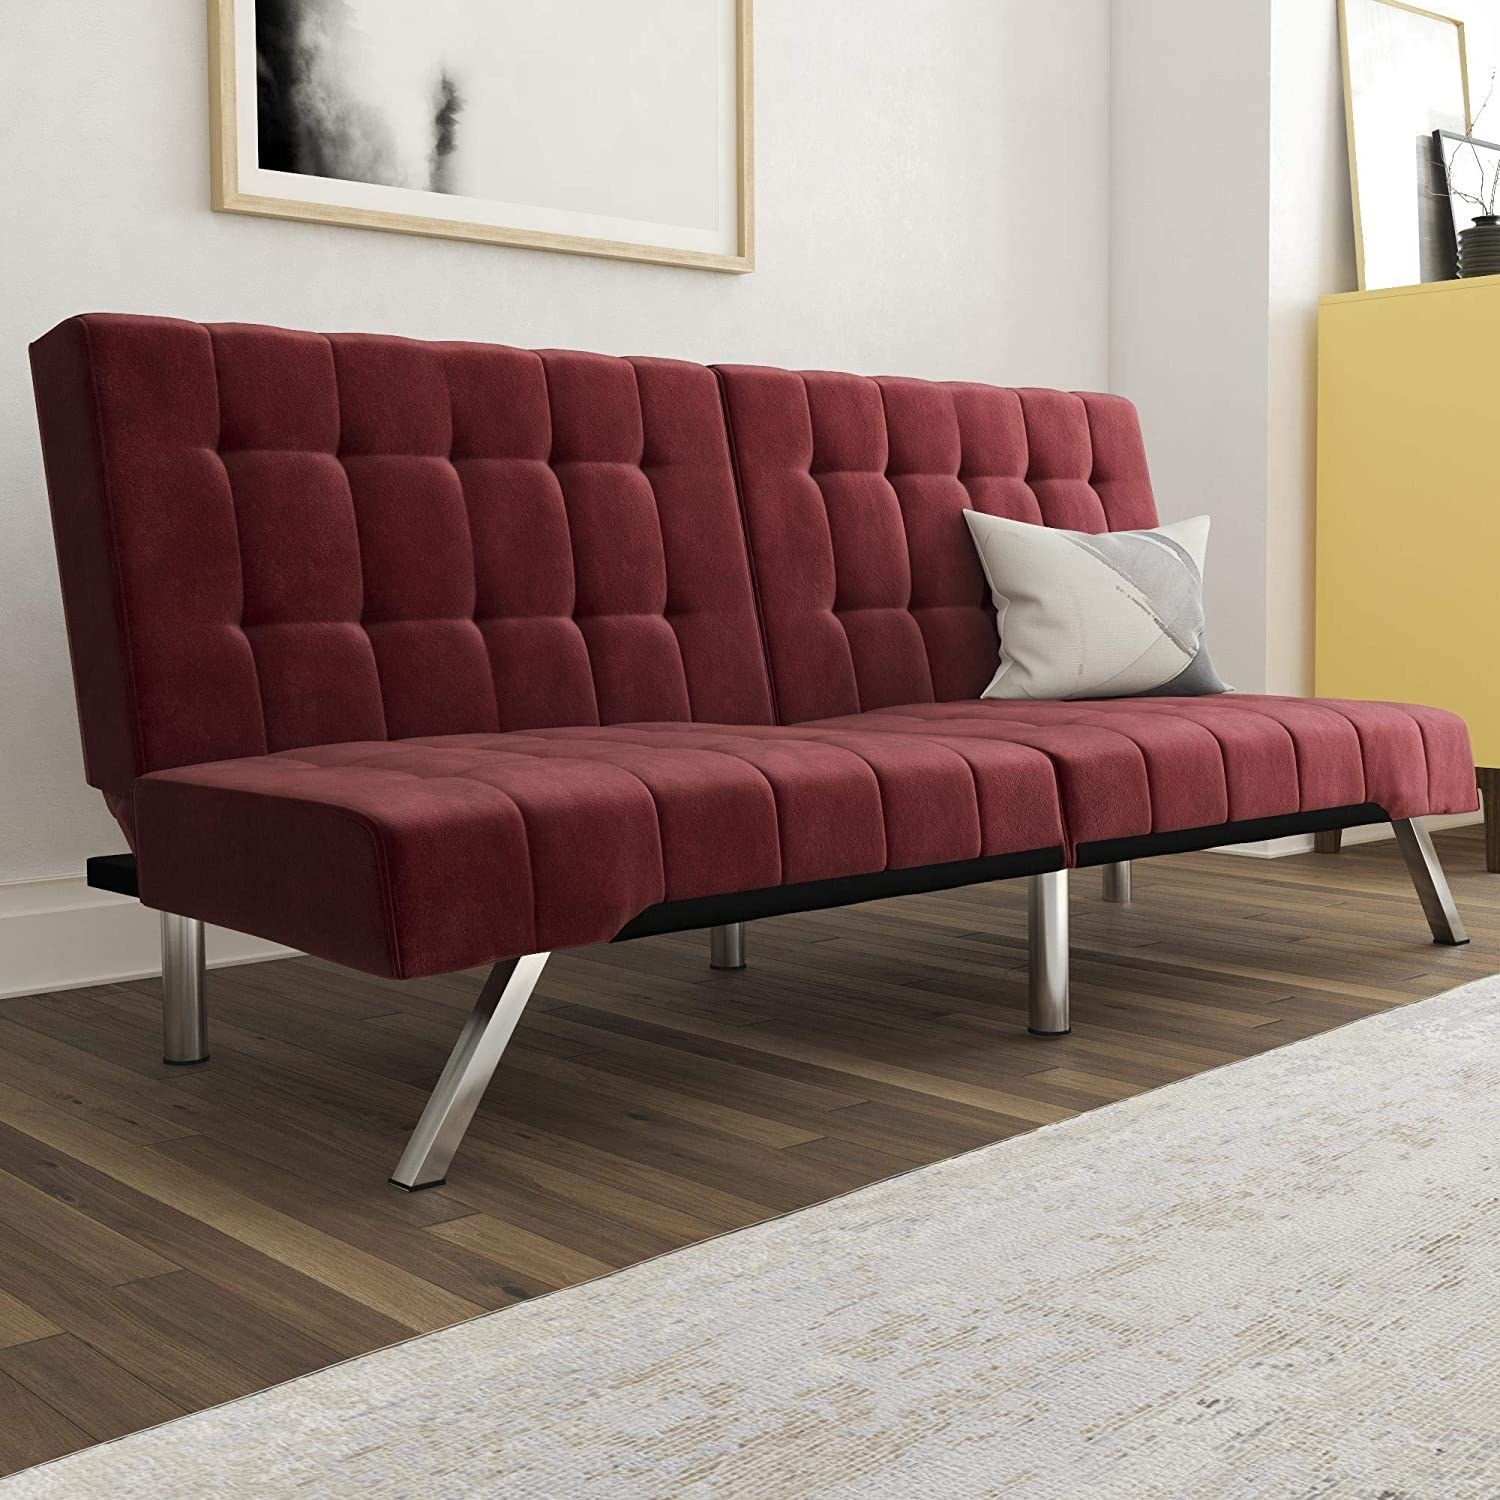 a red tufted futon